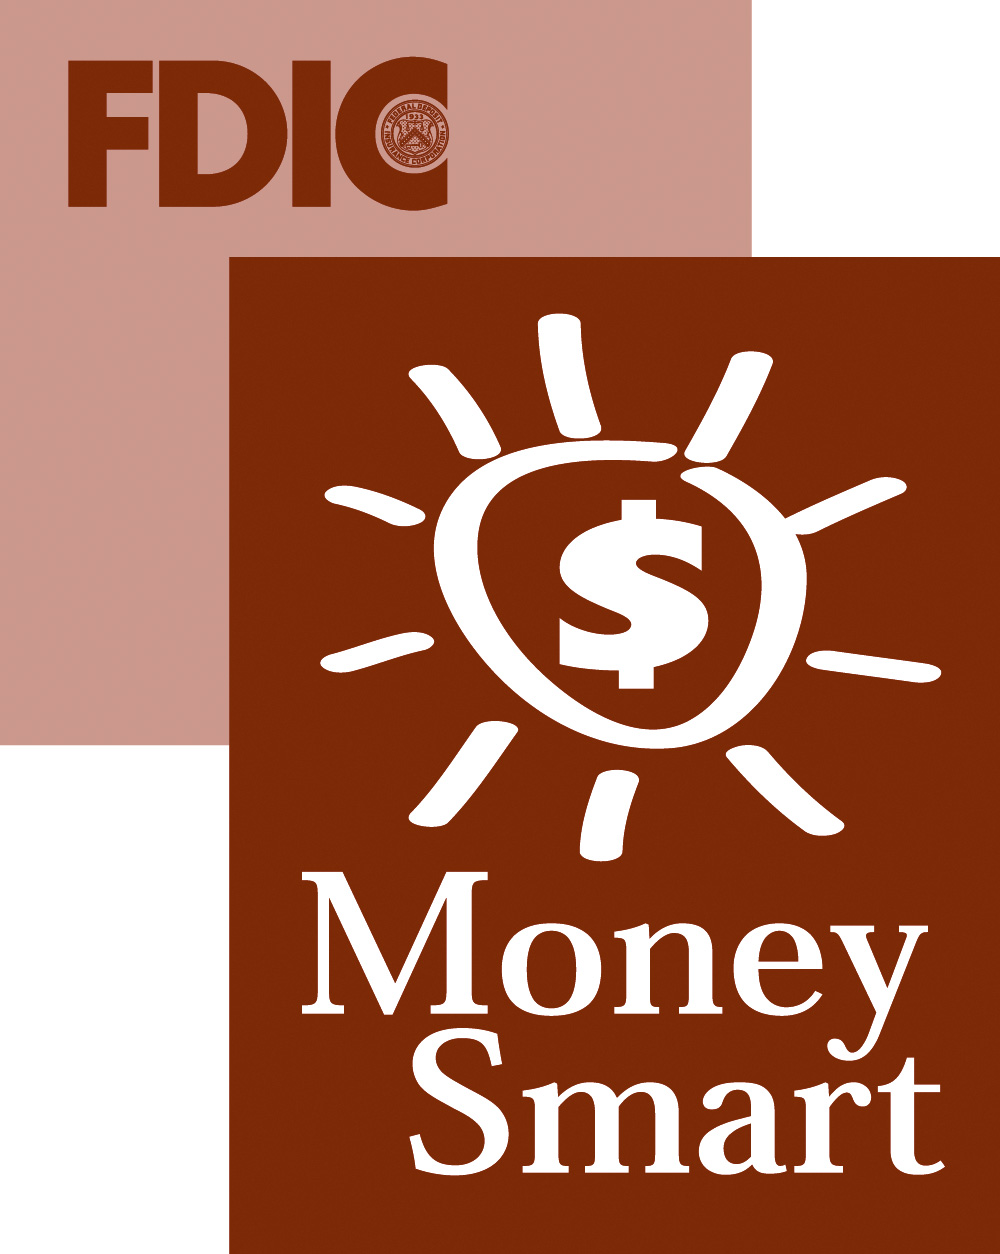 FDIC: FDIC Consumer News Summer 2016 - Money Smart at 15: The FDIC's Free Financial Education Curriculum